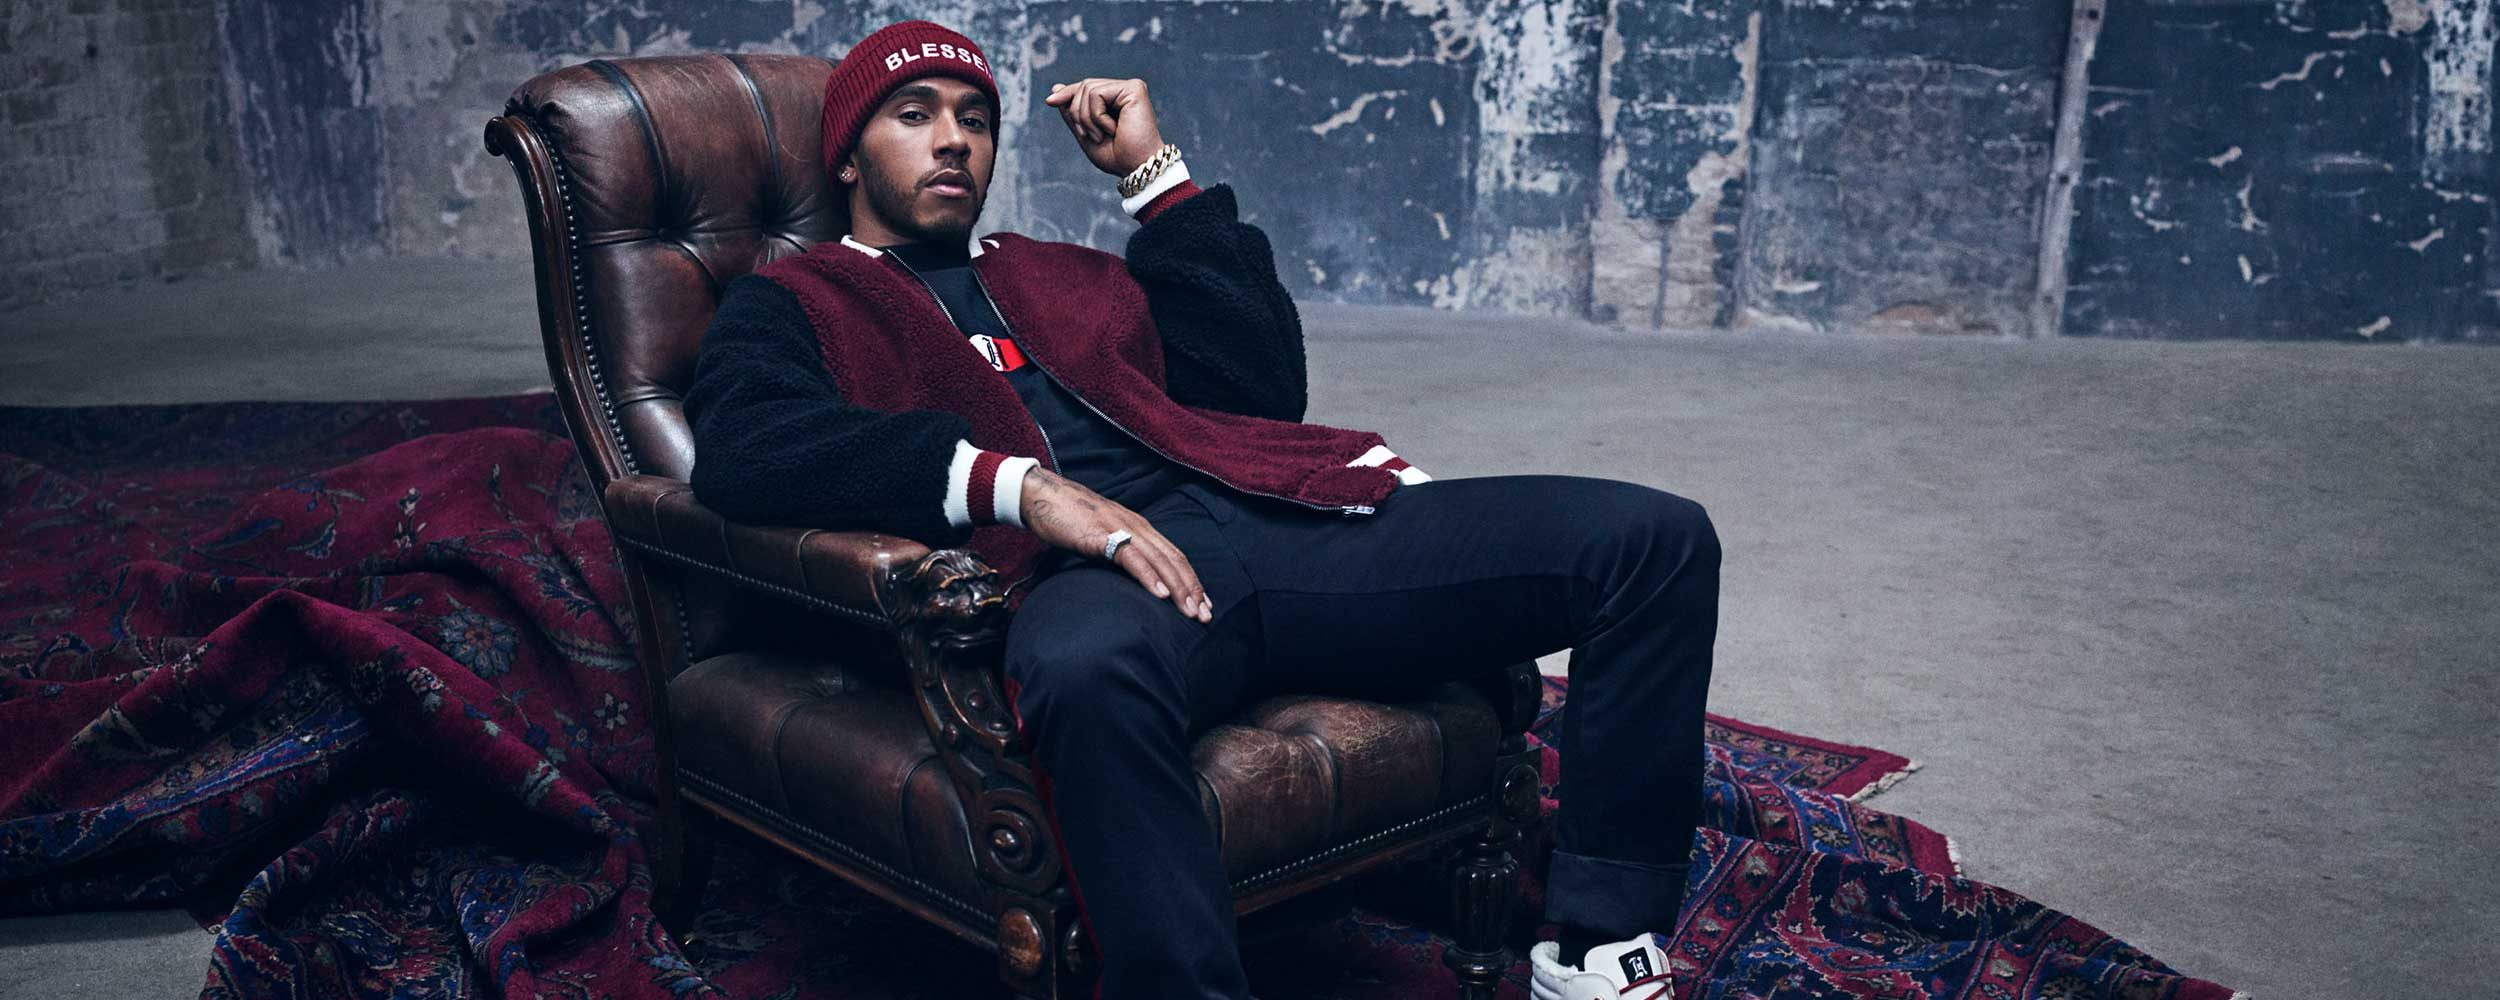 Tommy Hilfiger Lewis Hamilton in chair